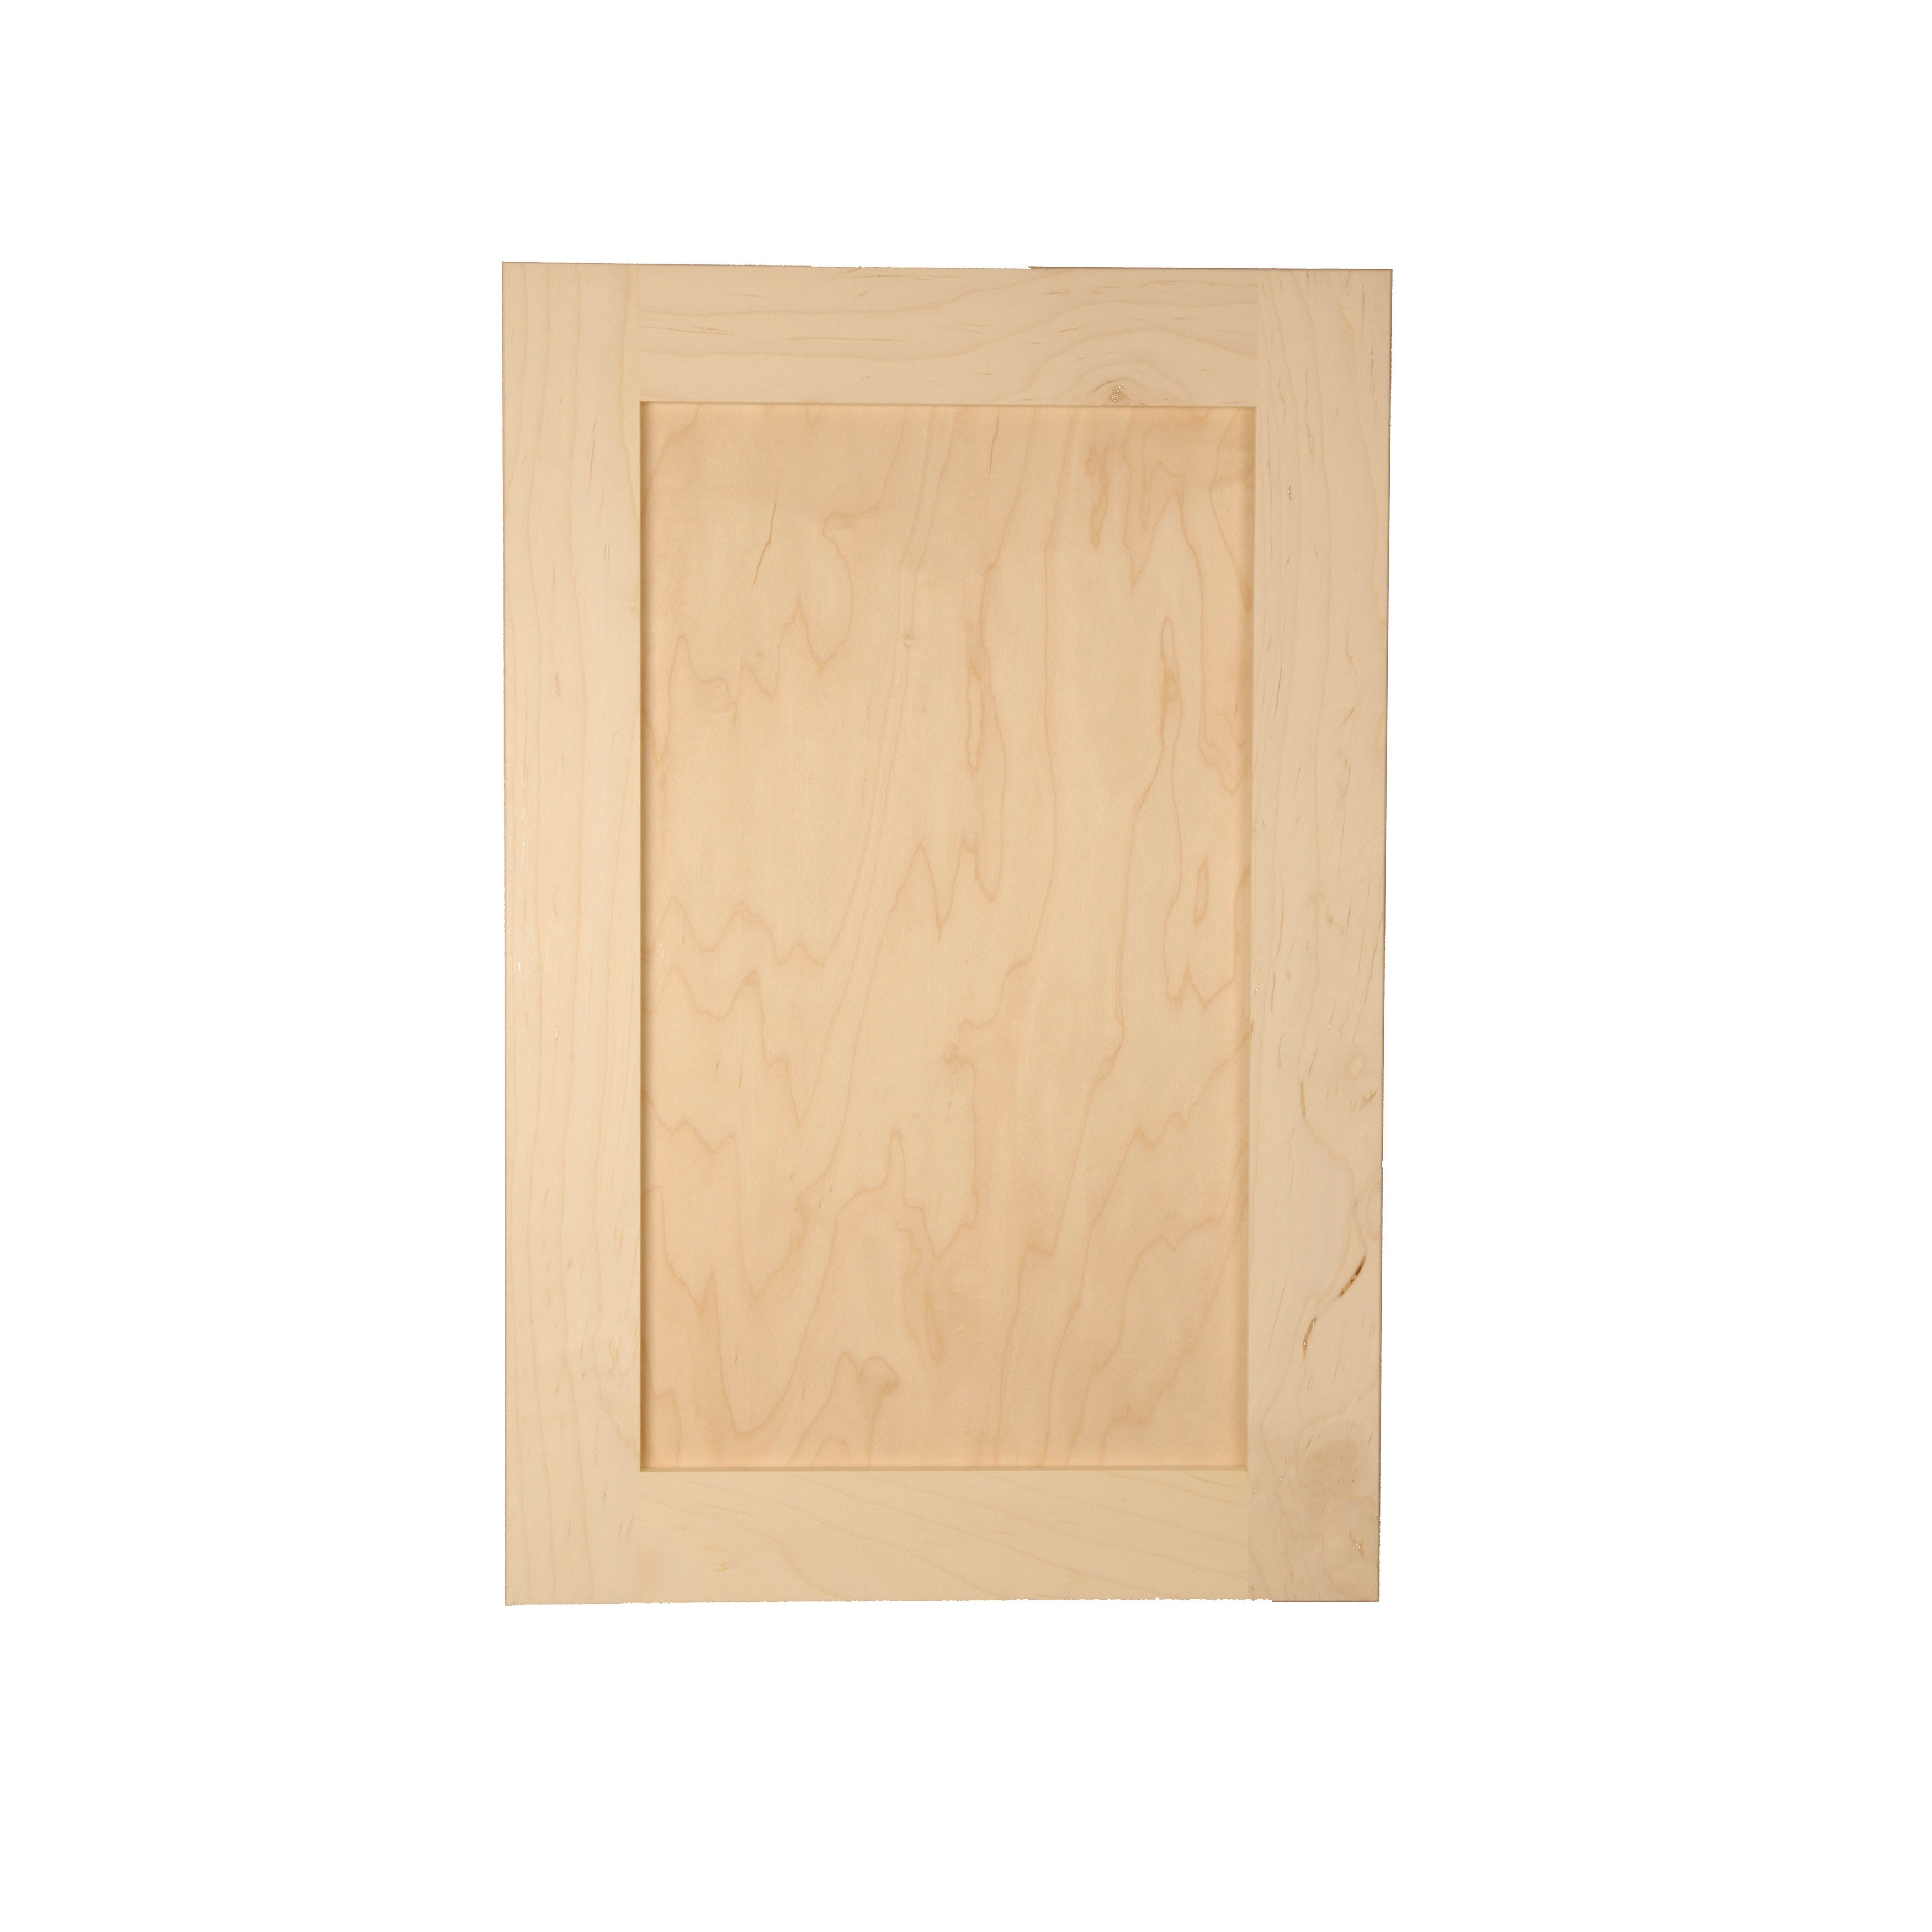 Shop Shaker Style Frameless Recessed In-wall Bathroom Medicine ...